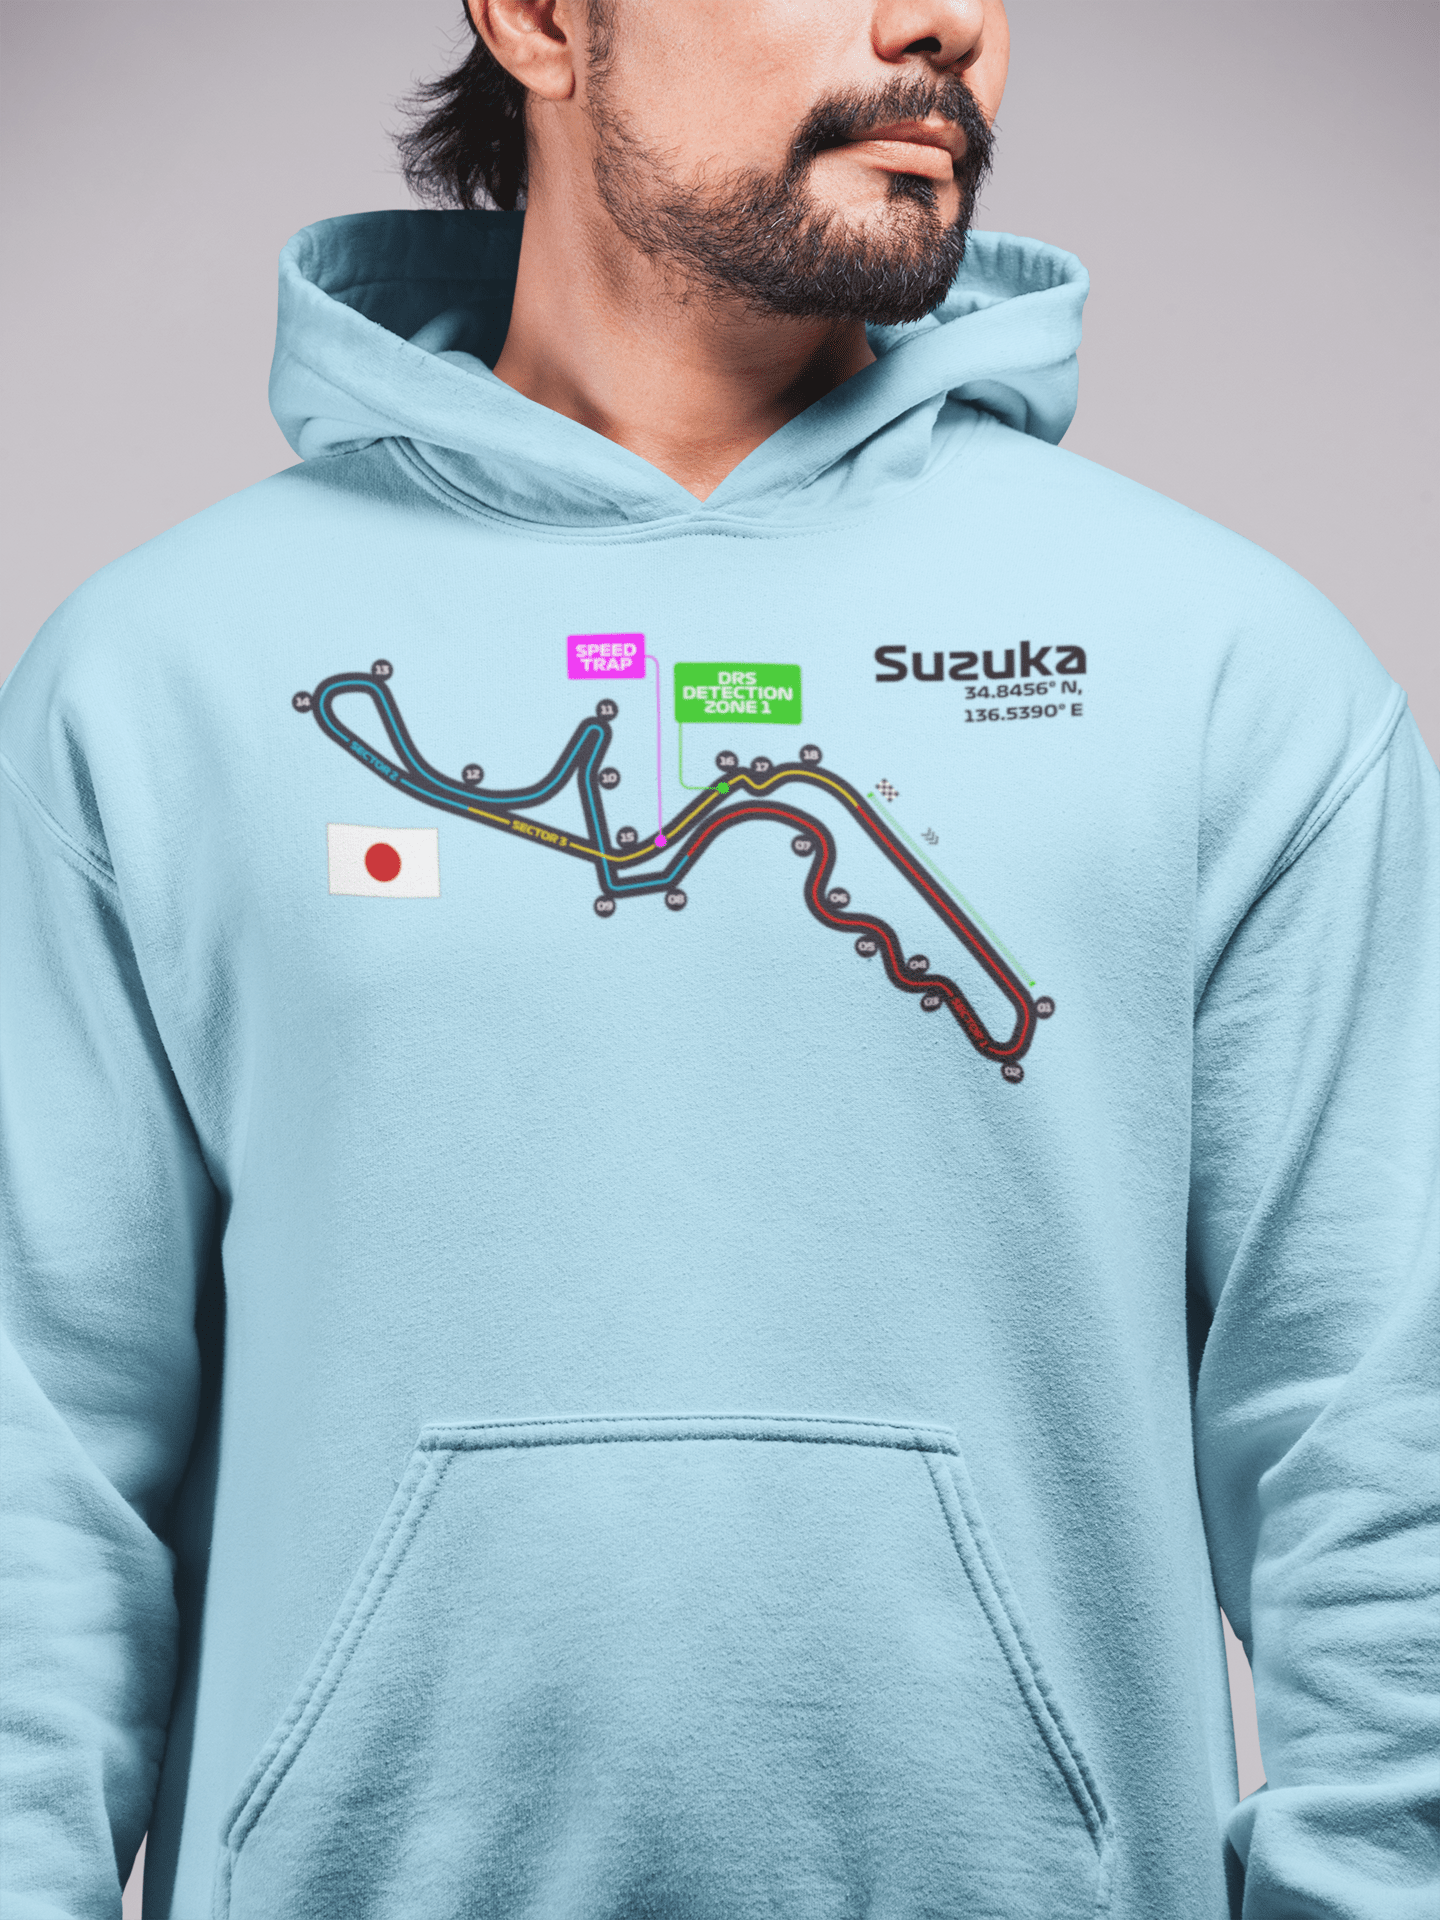 Suzuka Circuit Hooded Sweatshirt